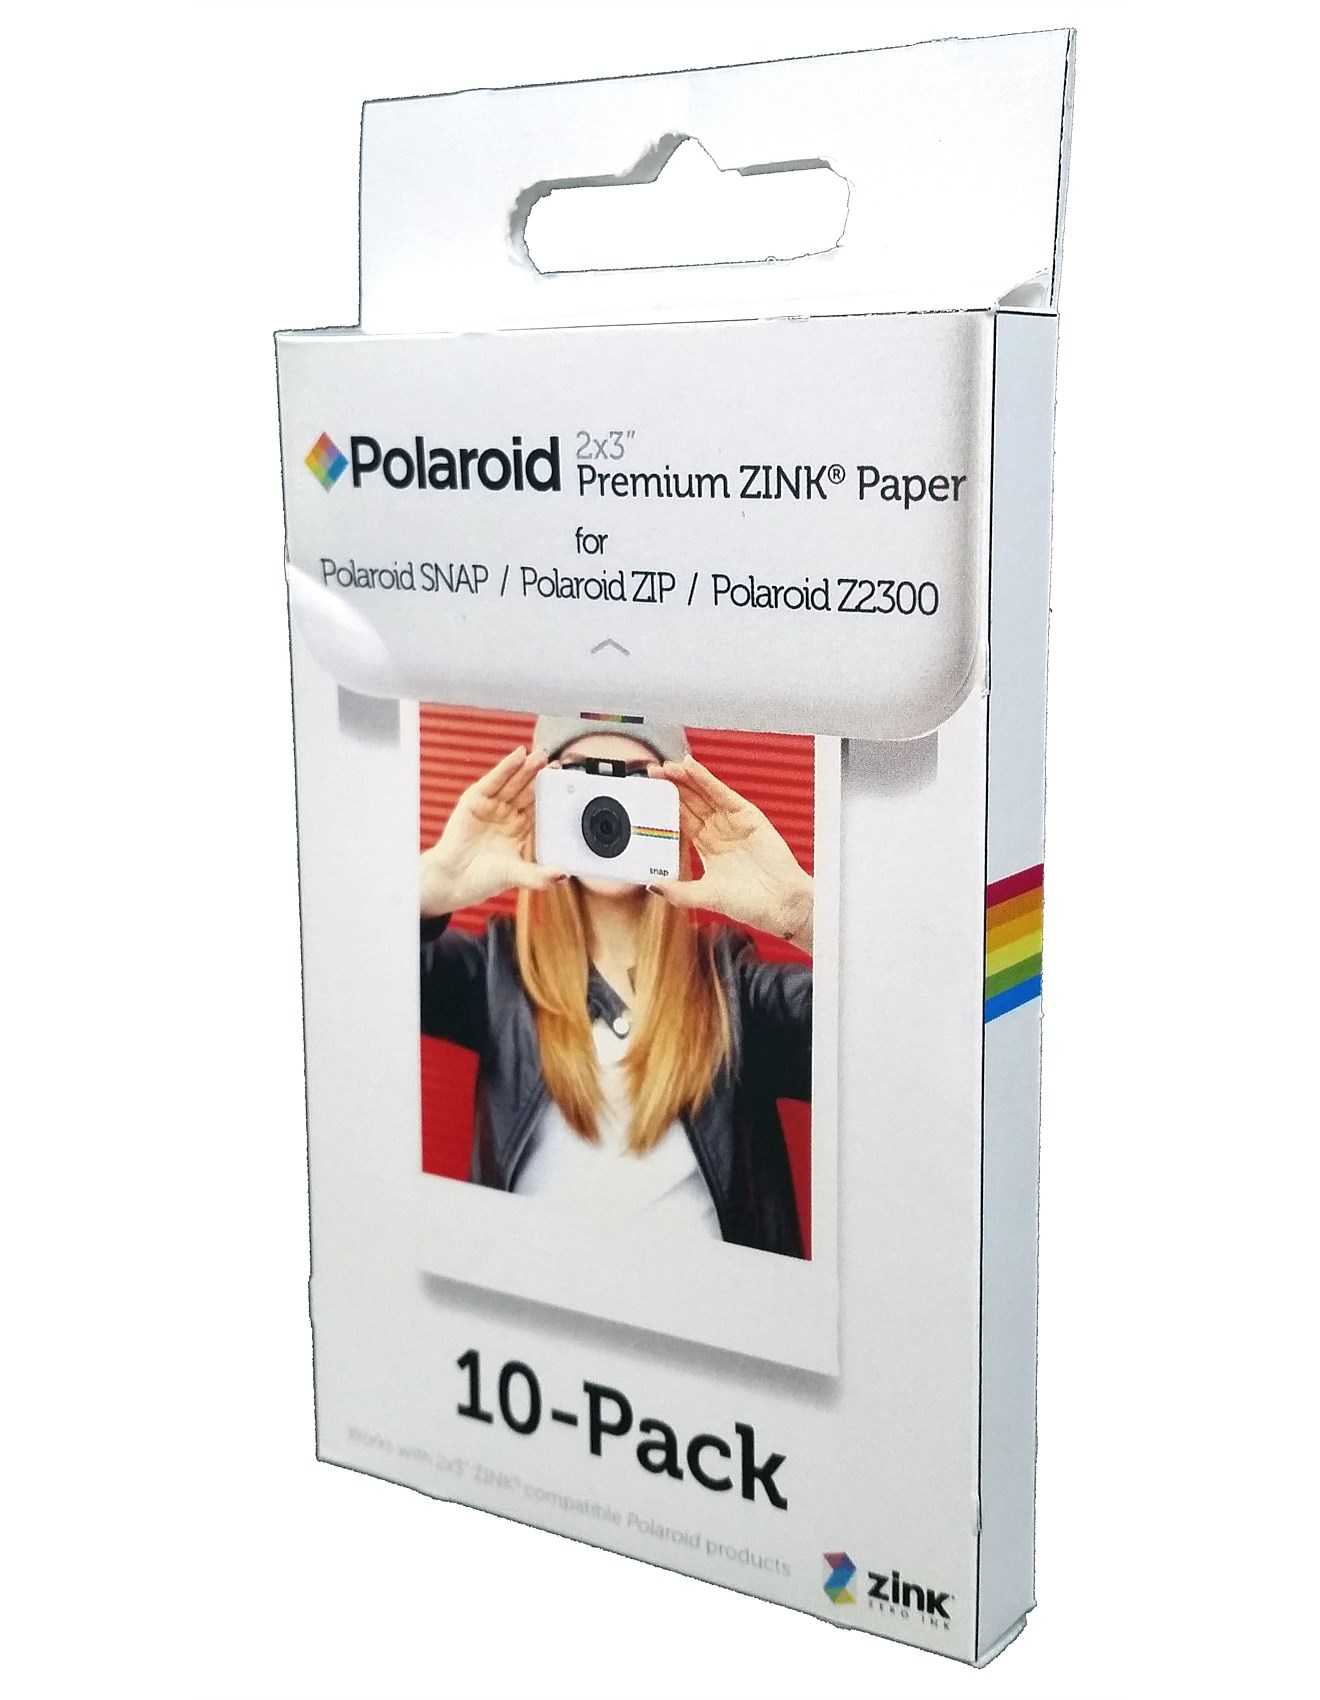 Polaroid Buy Polaroid Cameras Film Printers David Jones